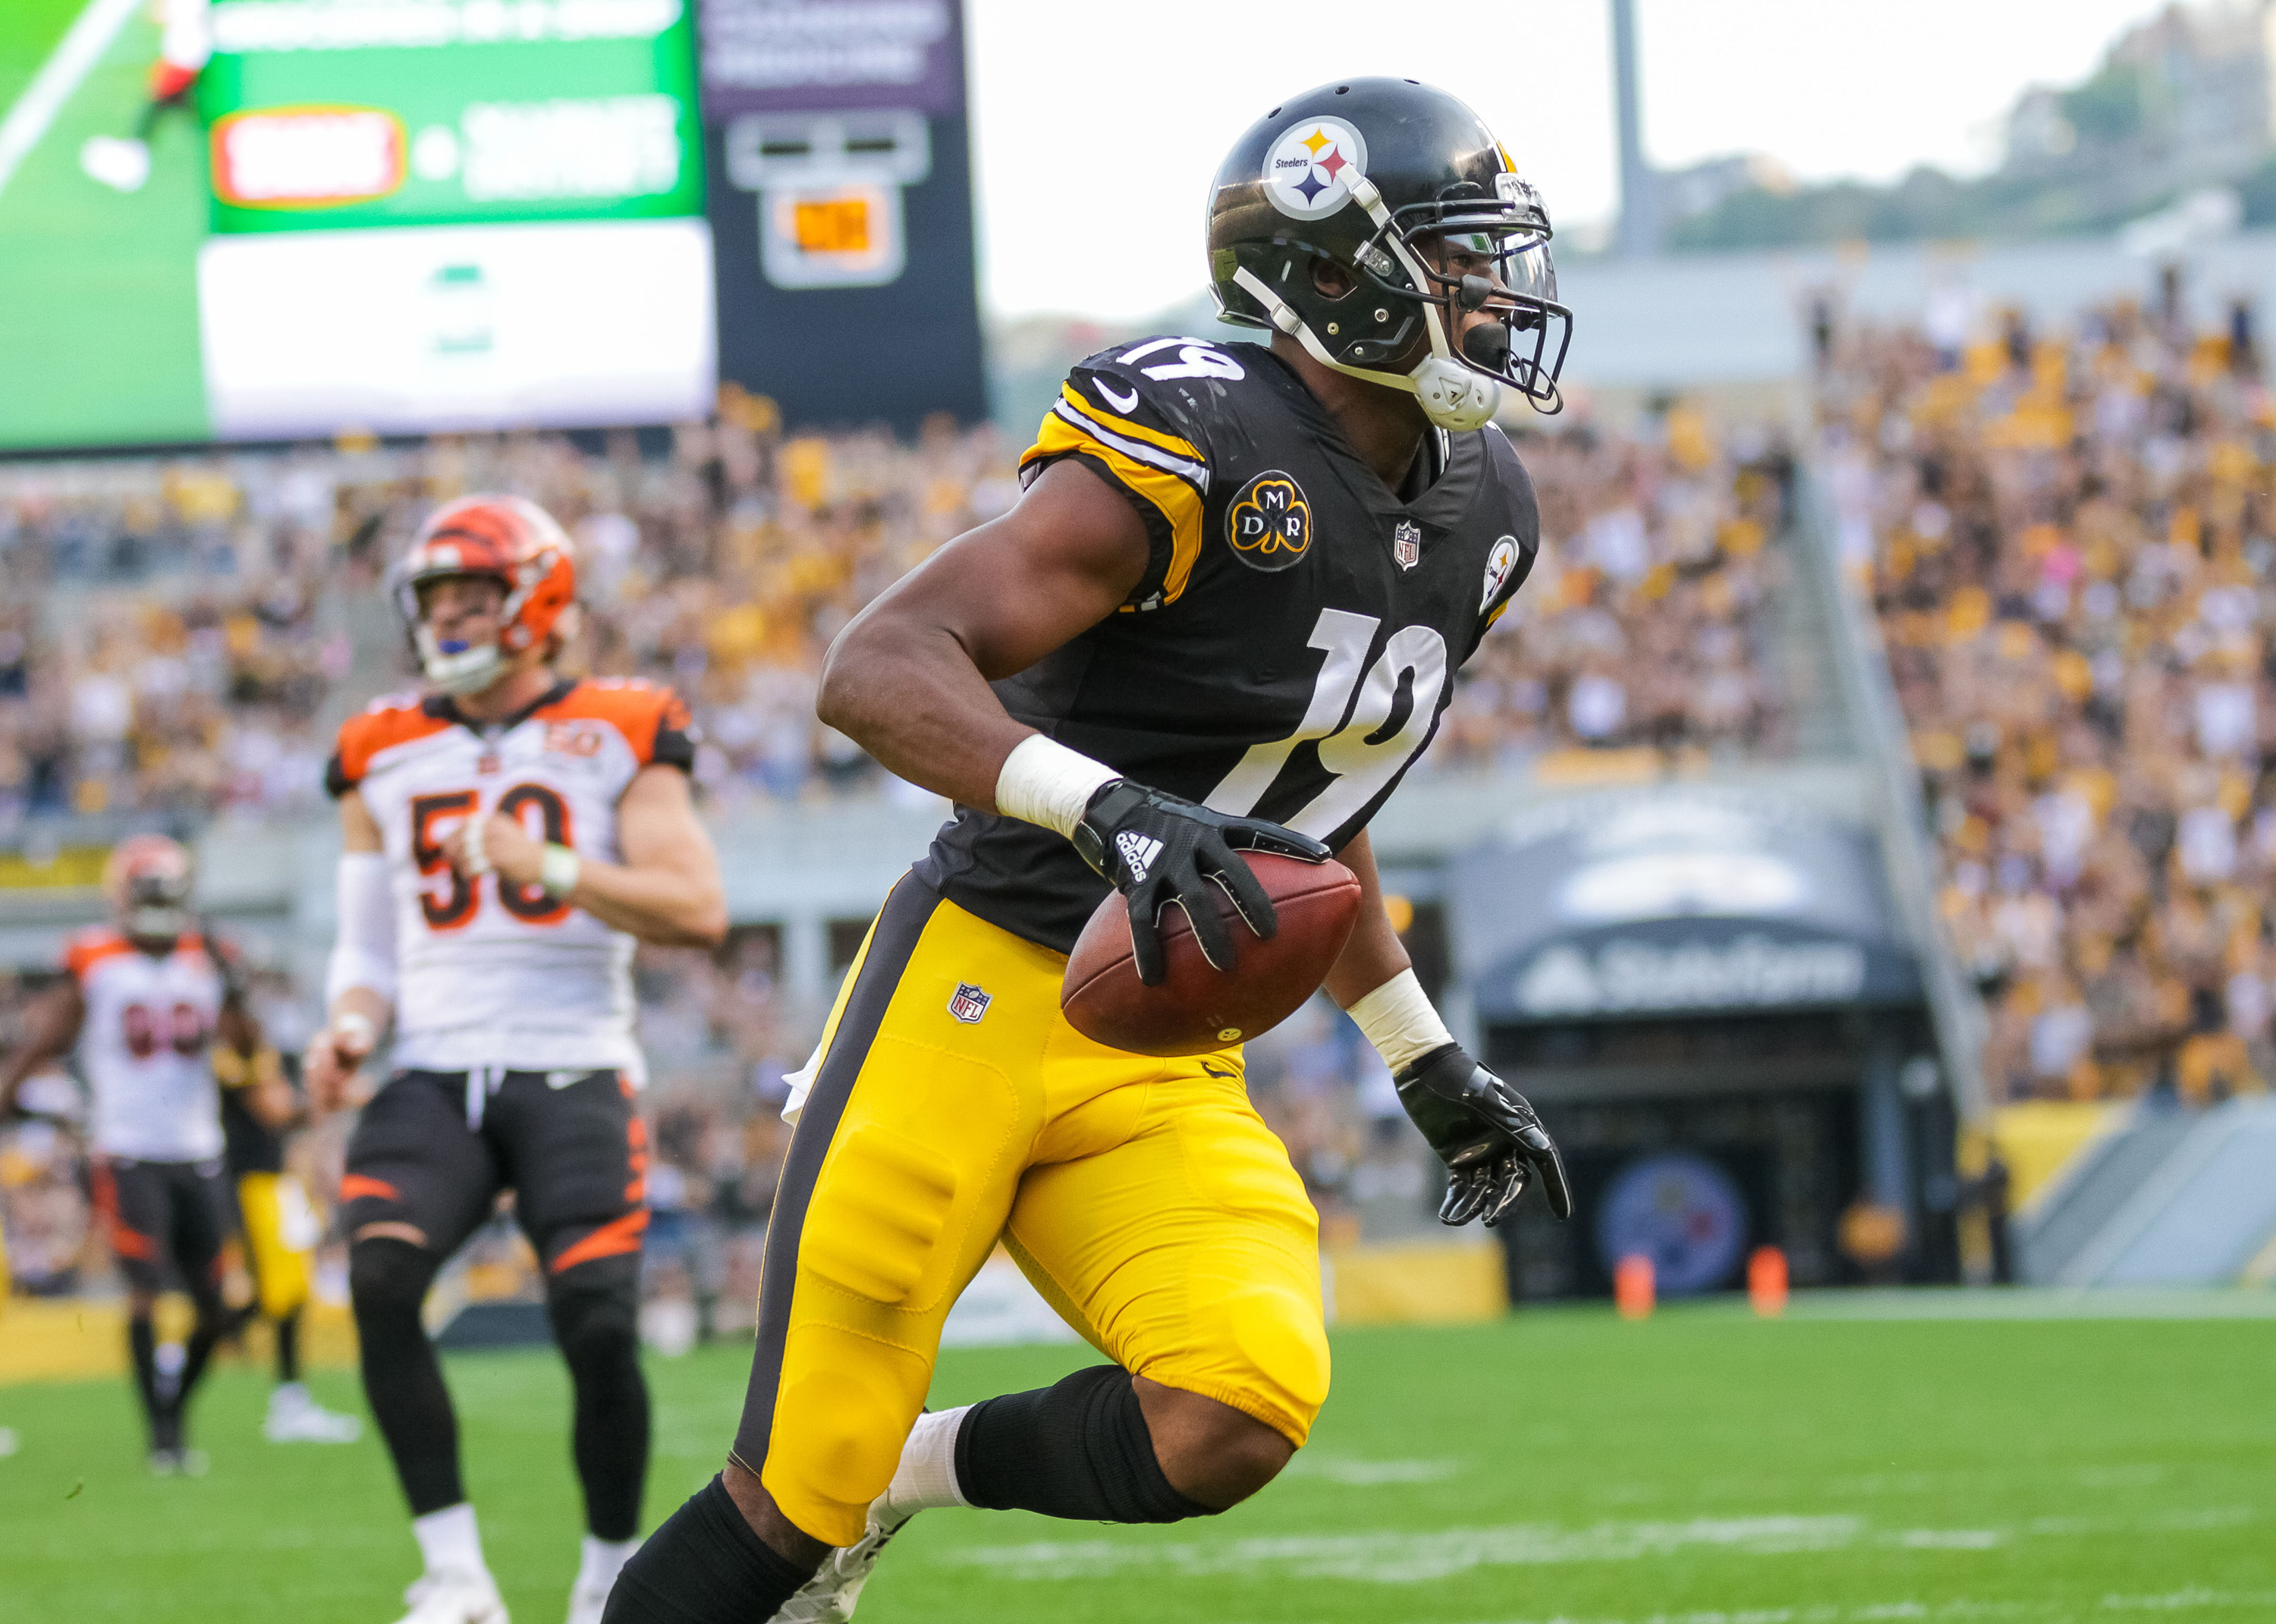 Pittsburgh Steelers wide receiver JuJu Smith-Schuster, shown here scoring one of his four touchdowns this season, has been a popular pickup this week among fantasy football players. (Brian Kunst/Zuma Press/TNS)